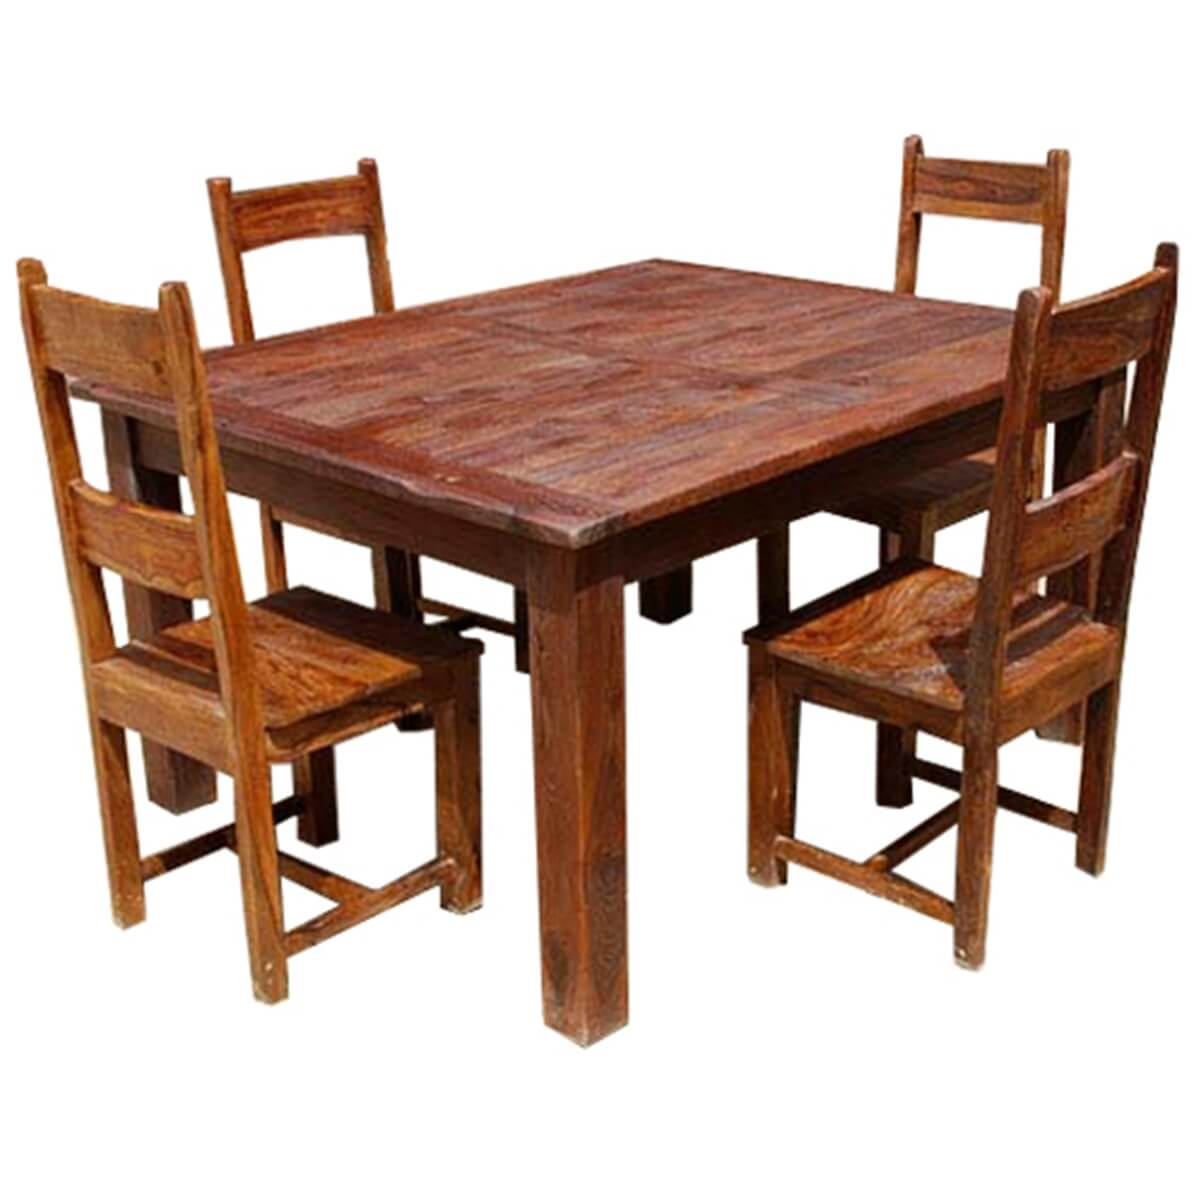 Dining Room Table With Chairs Rustic Solid Wood Appalachian Dining Room Table And Chair Set